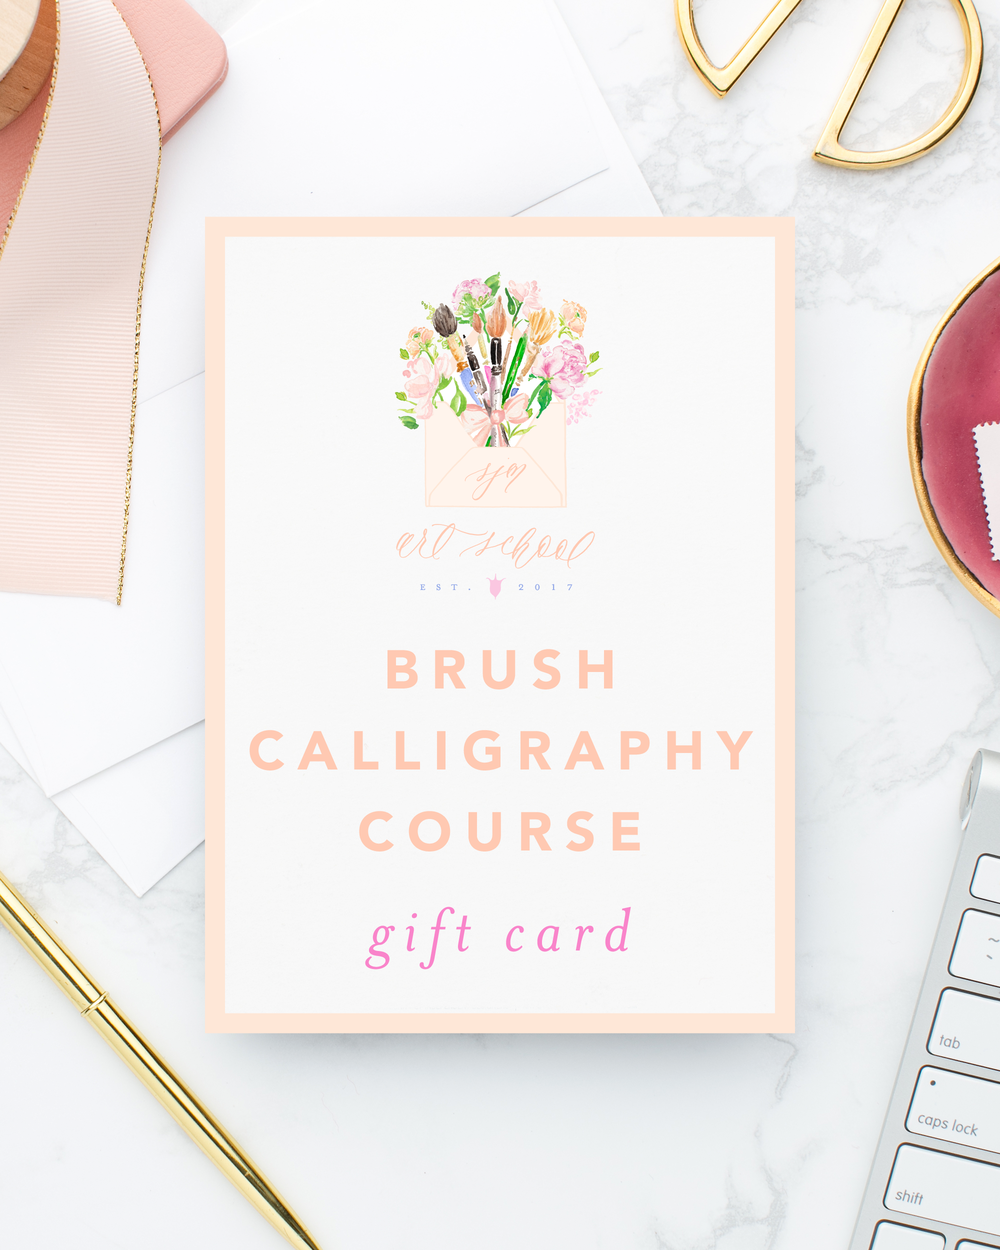 SJM Art School Brush Calligraphy Online Course Gift Card